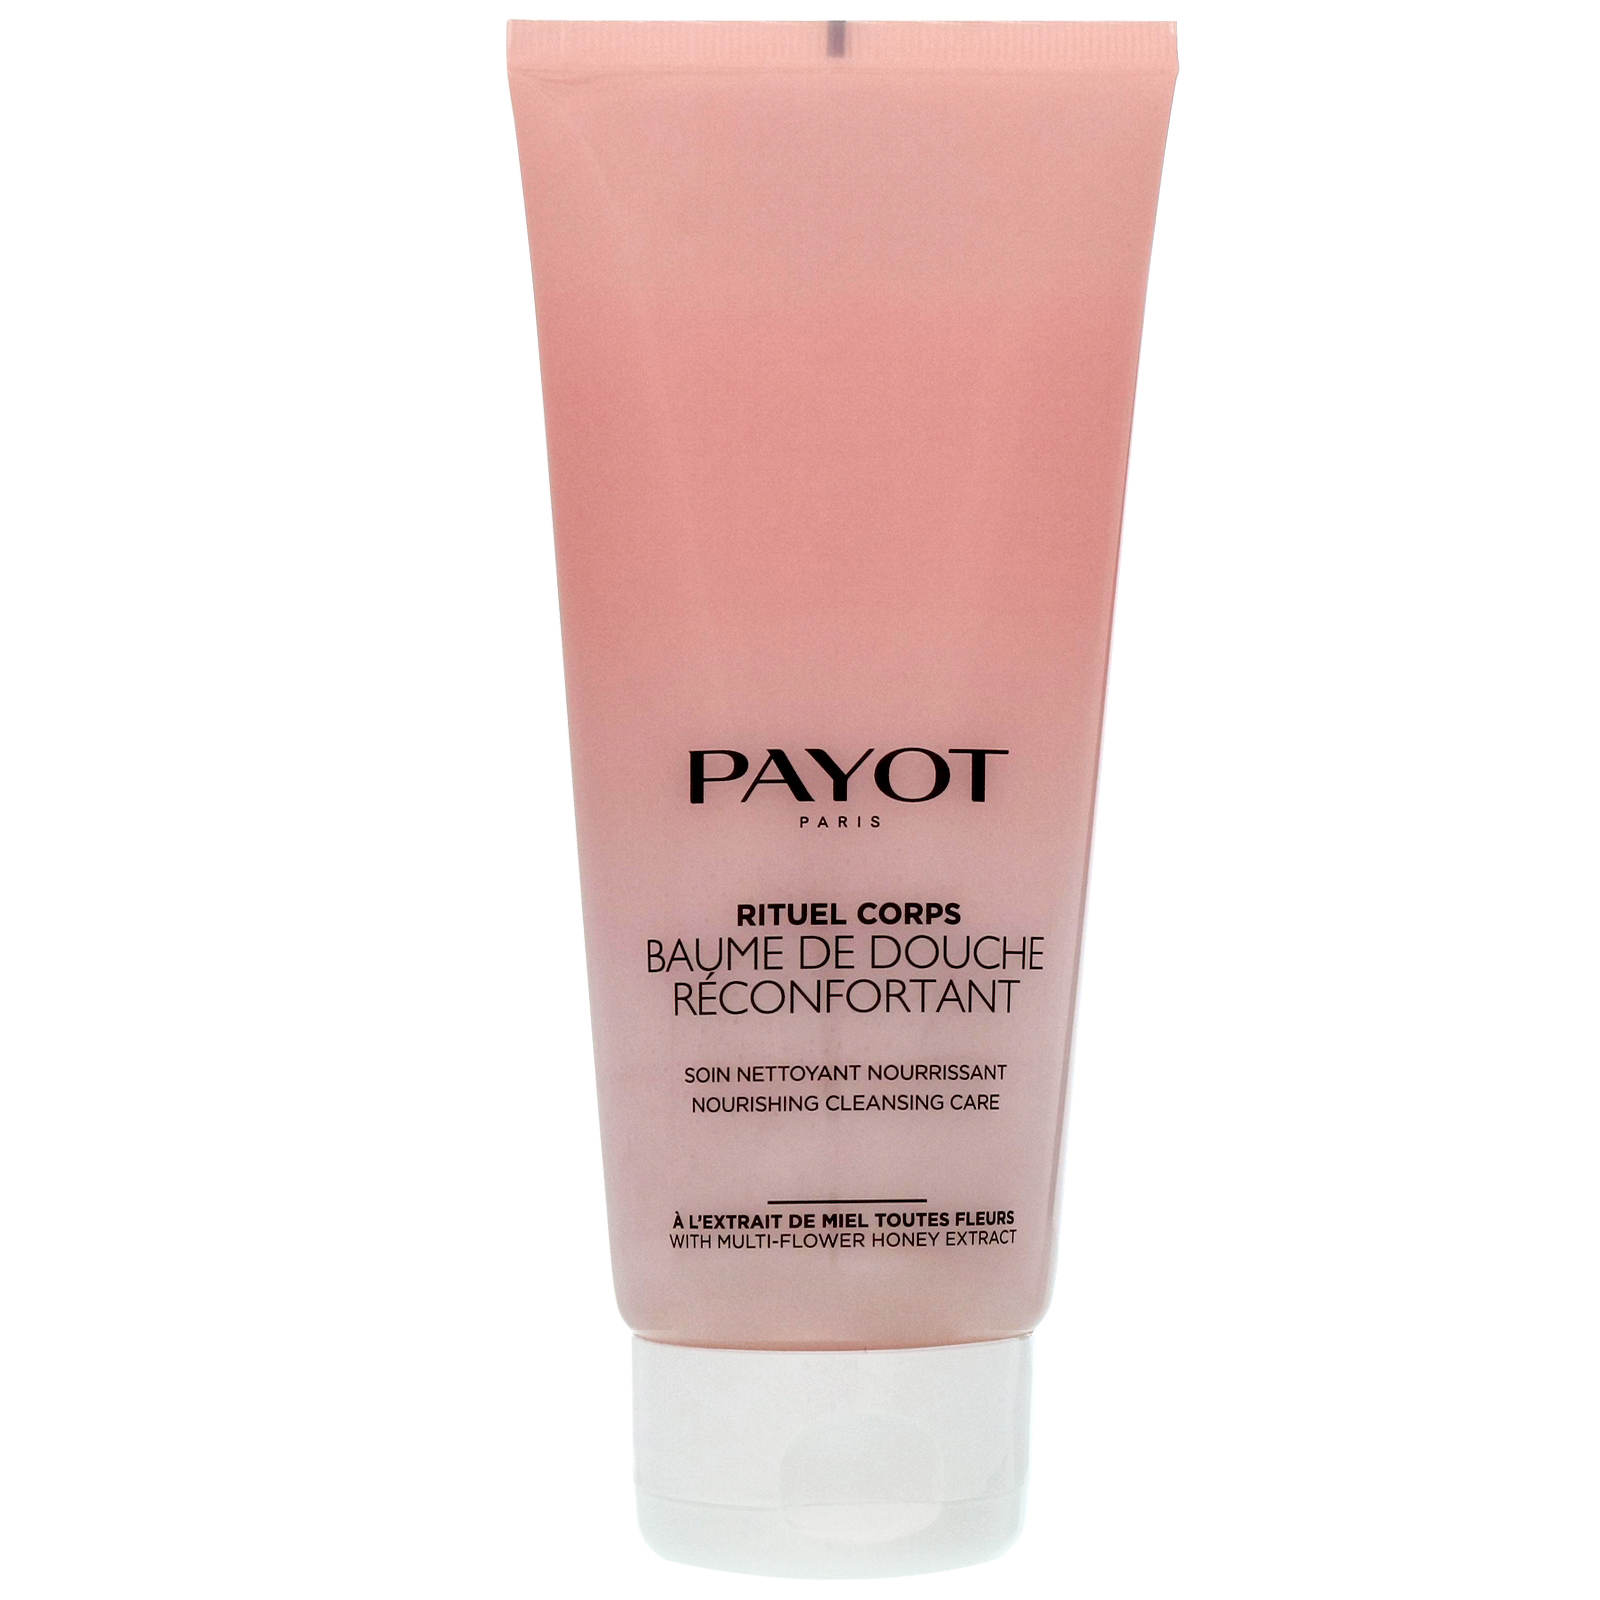 Payot Paris Rituel Corps Baume De Douche Reconfortant: Nourishing Cleansing Care 200ml